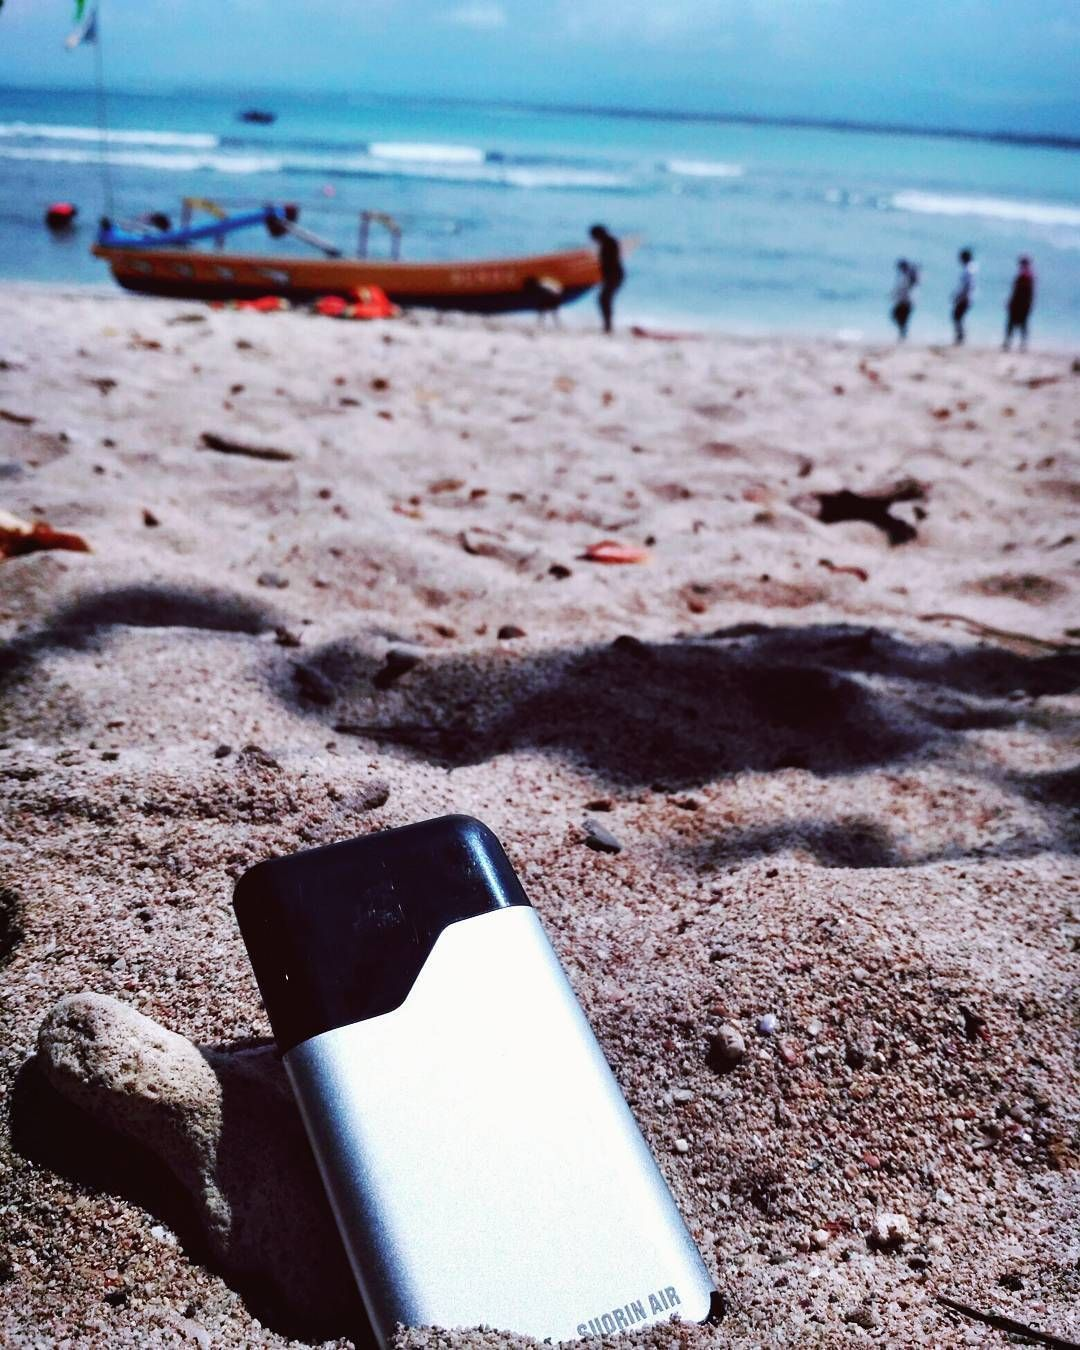 Suorin Air x beach suorinair voporizer Air pods, Air